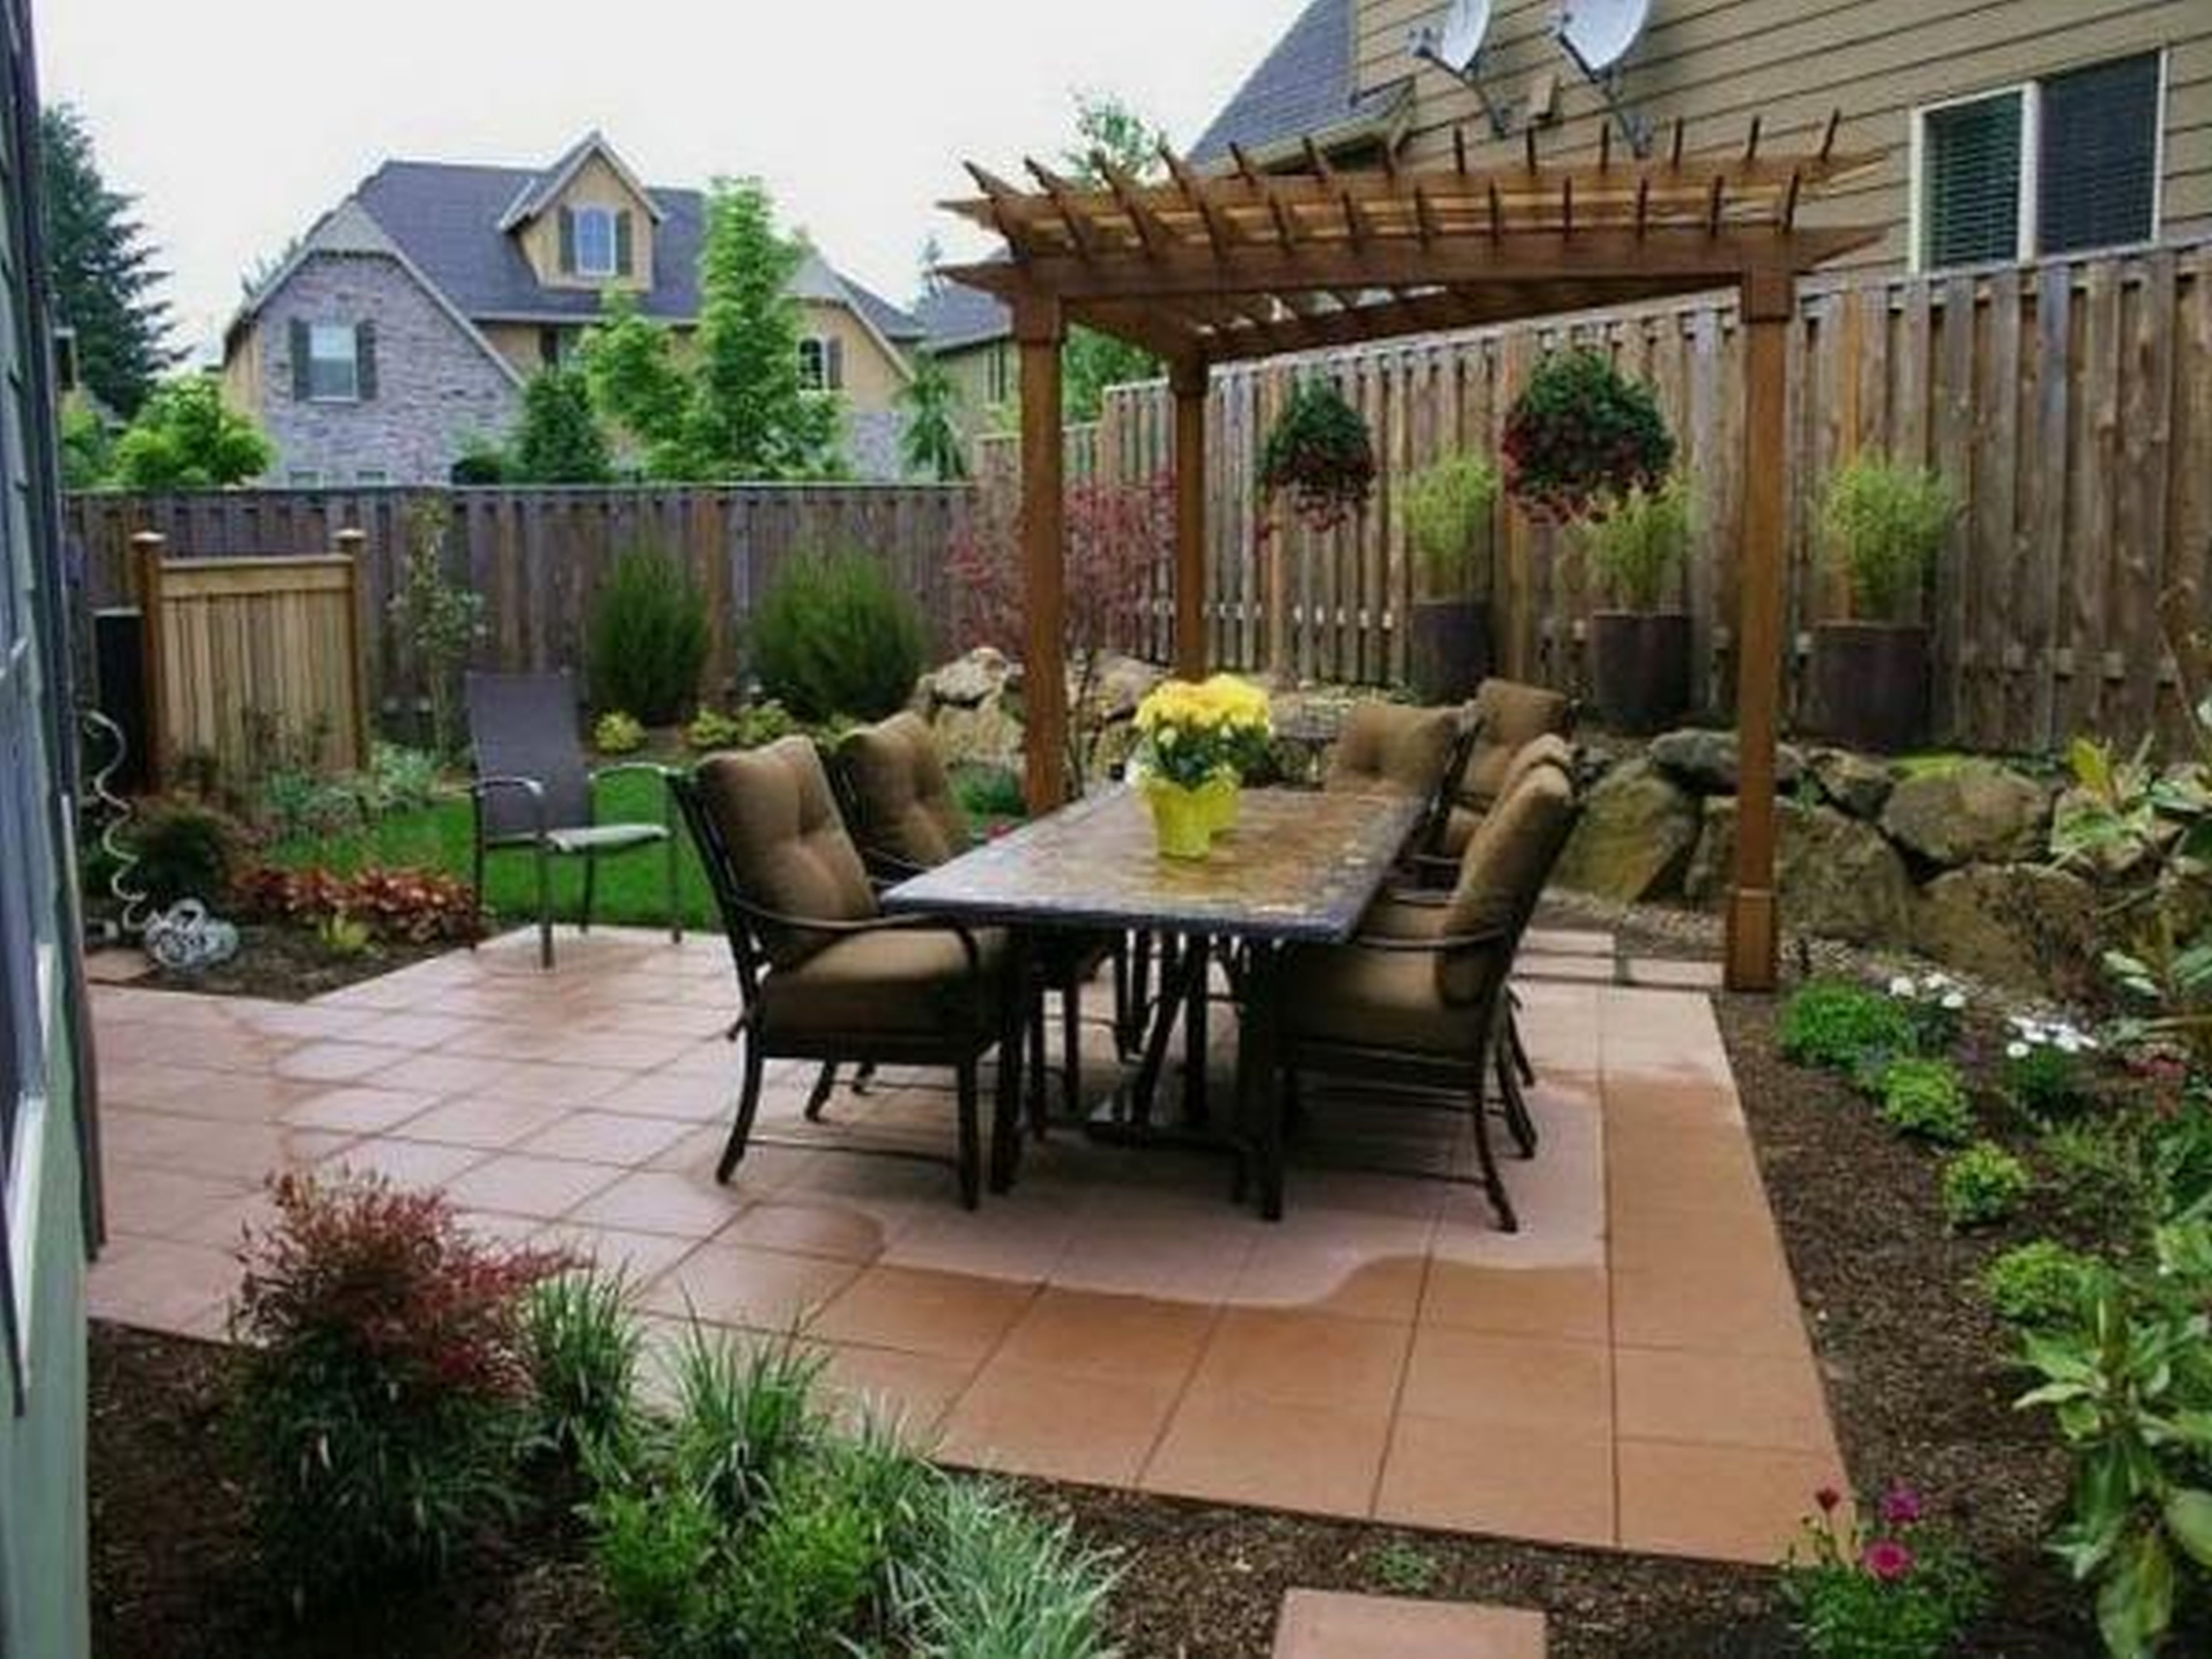 10 Best Concrete Patio Ideas For Small Backyards surprising concrete patio ideas for small backyards images